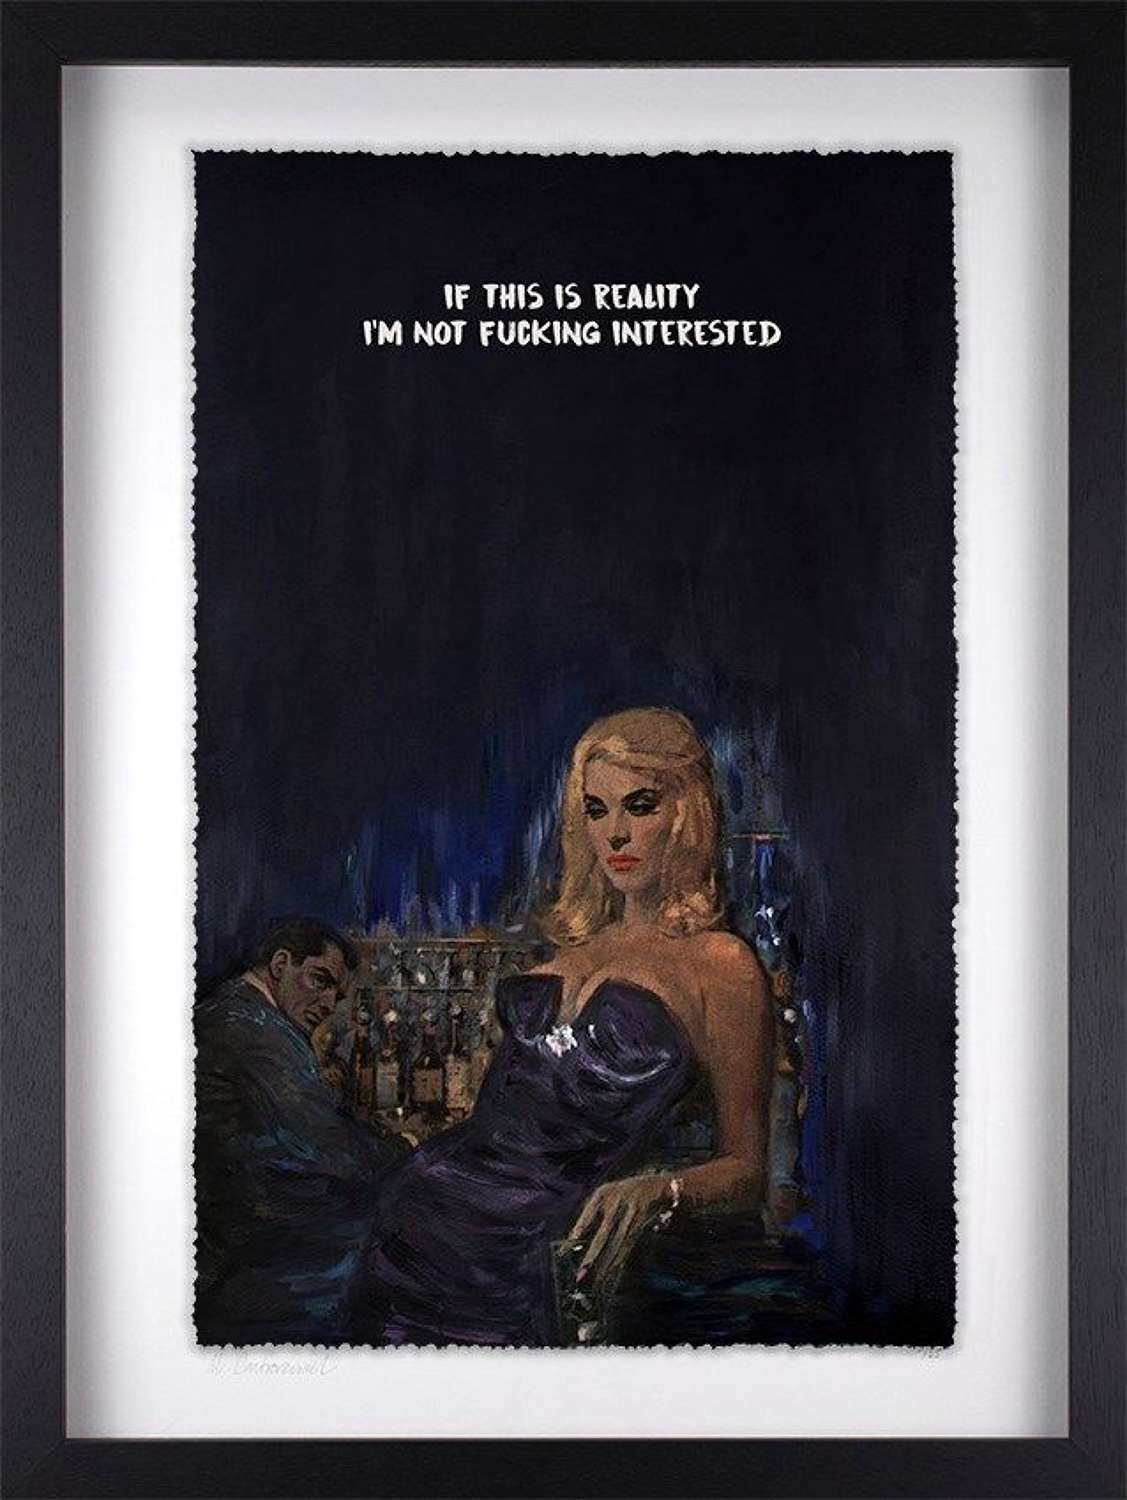 This is Reality - Framed Edition Art Print by Mr Controversial